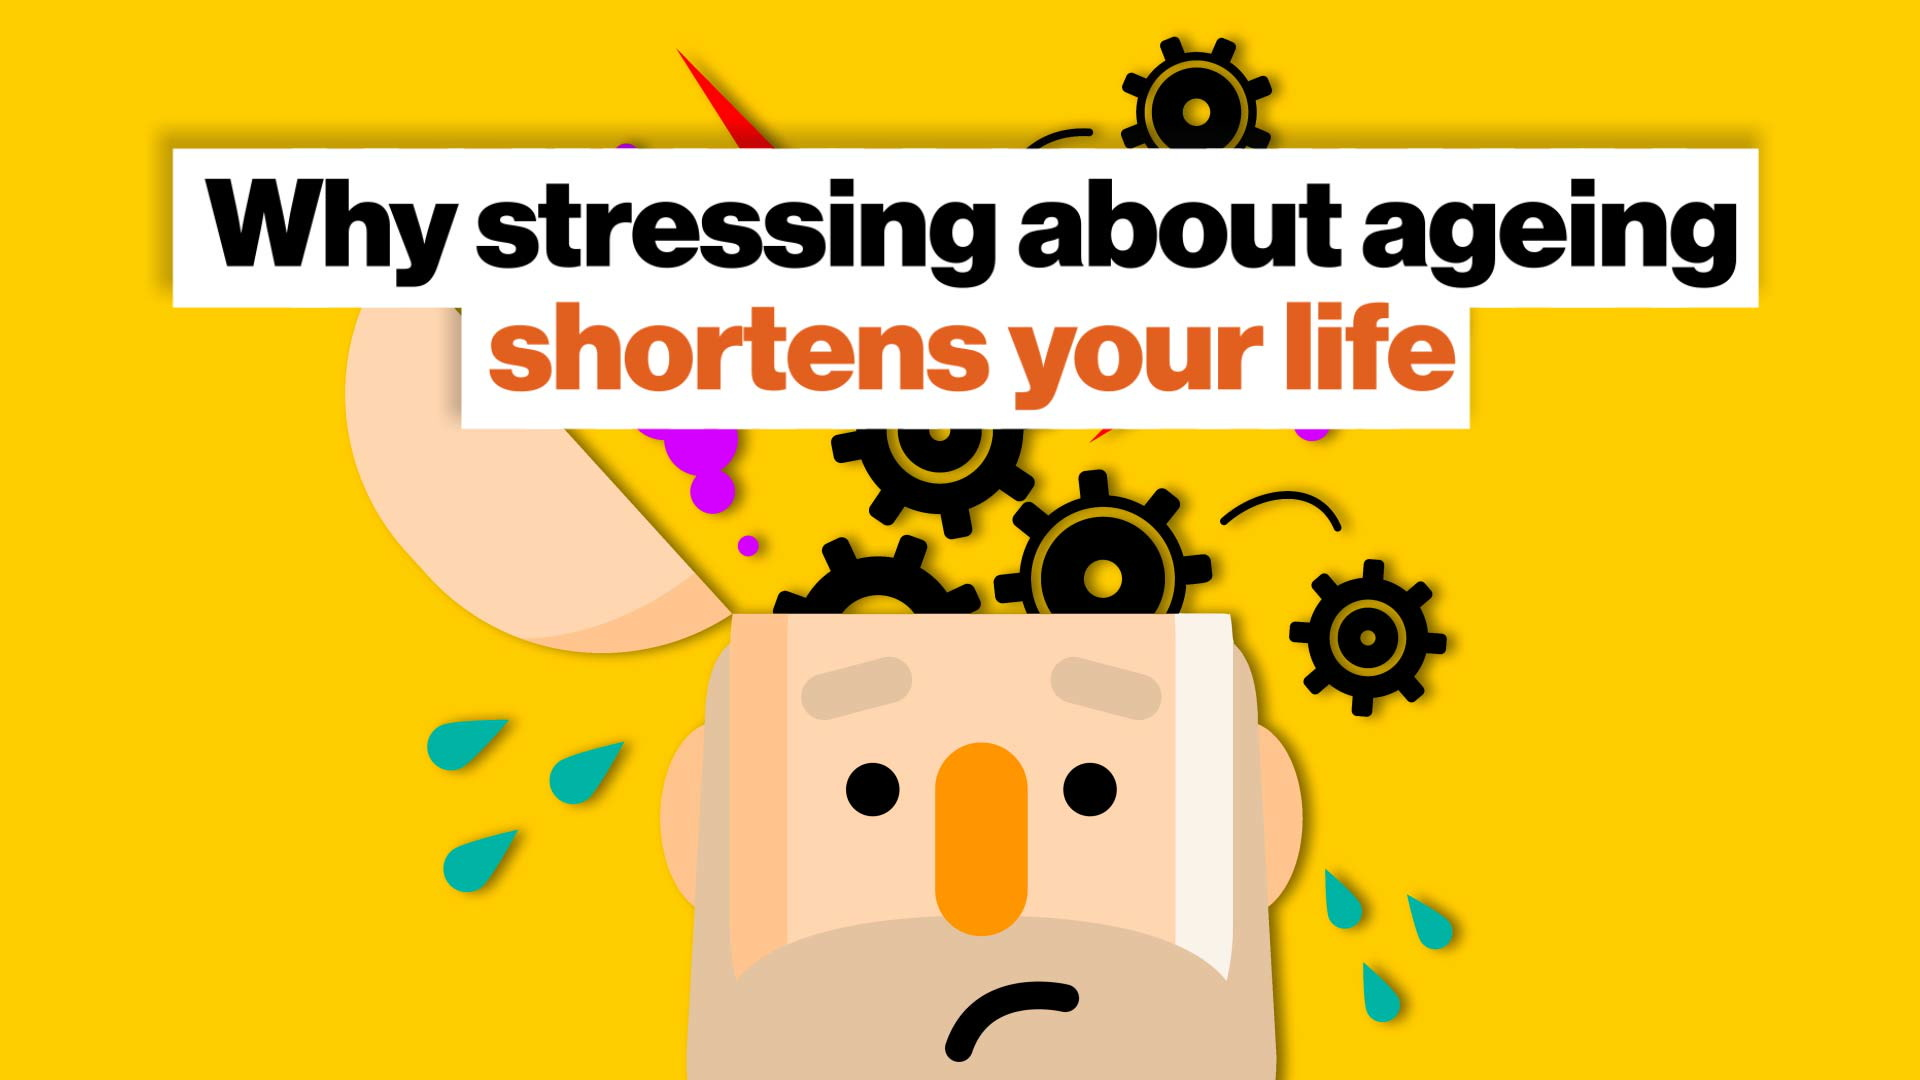 Stressing about aging damages your brain, shortens your life